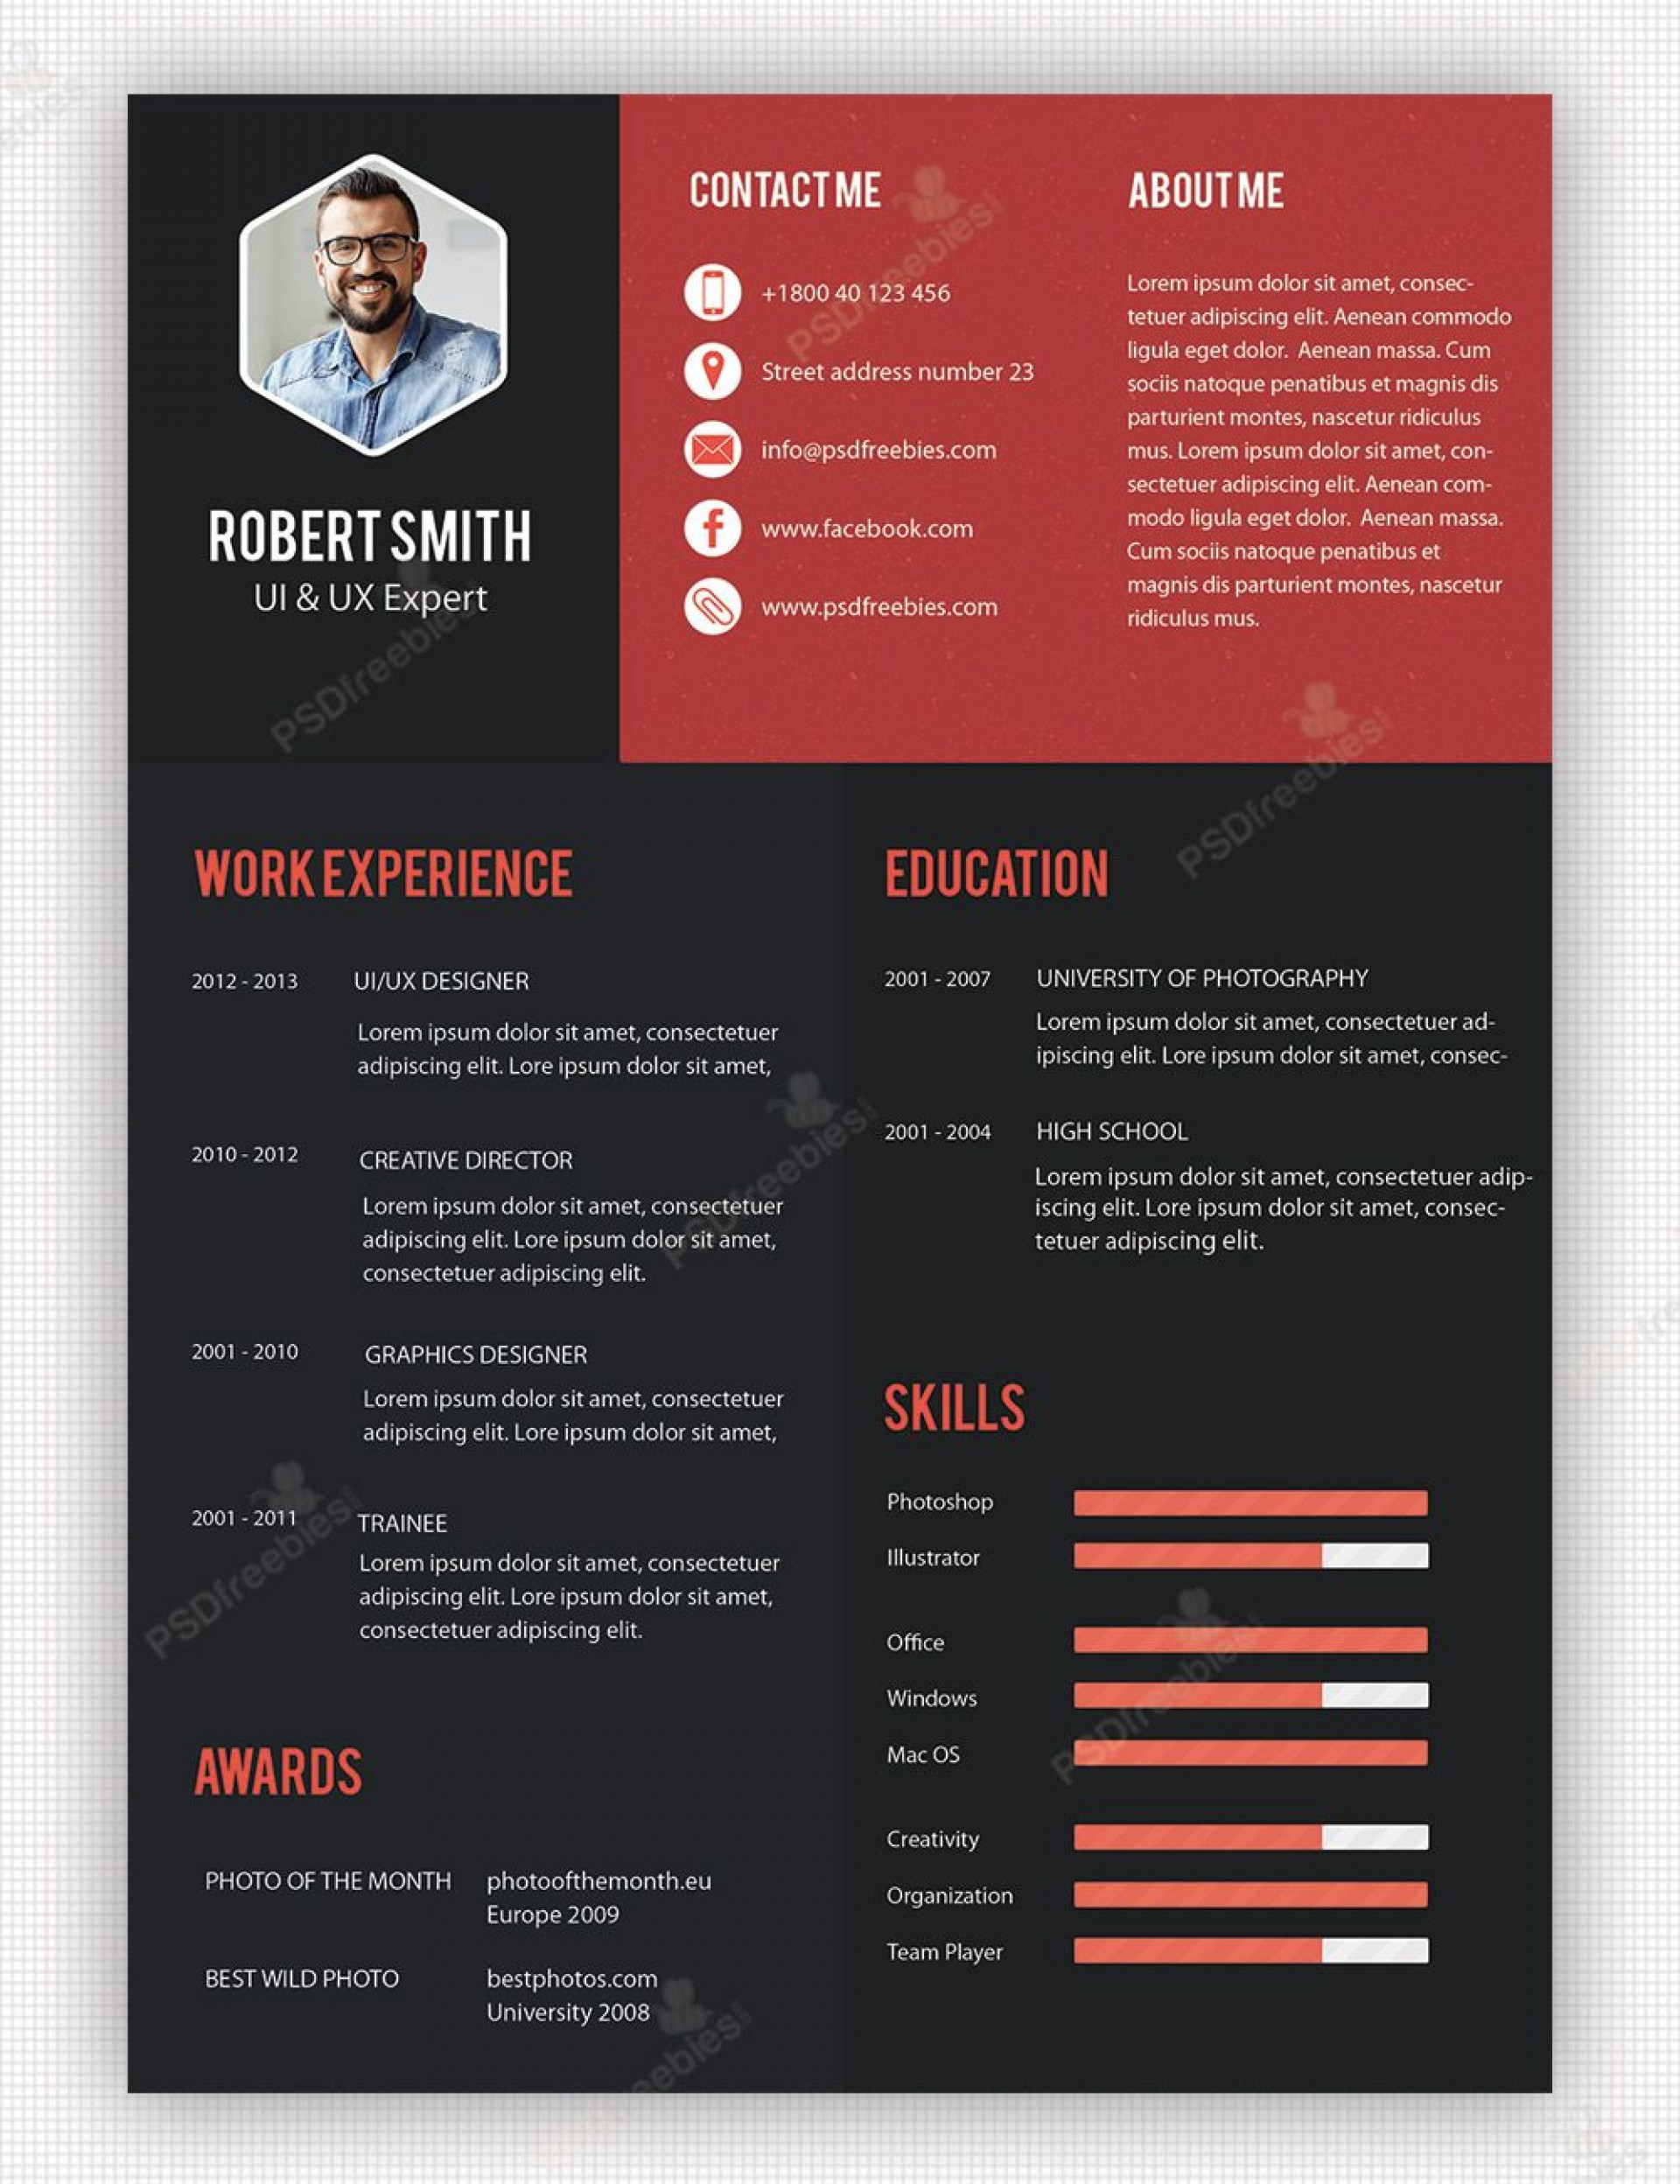 005 Marvelou Creative Cv Template Photoshop Free Picture 1920